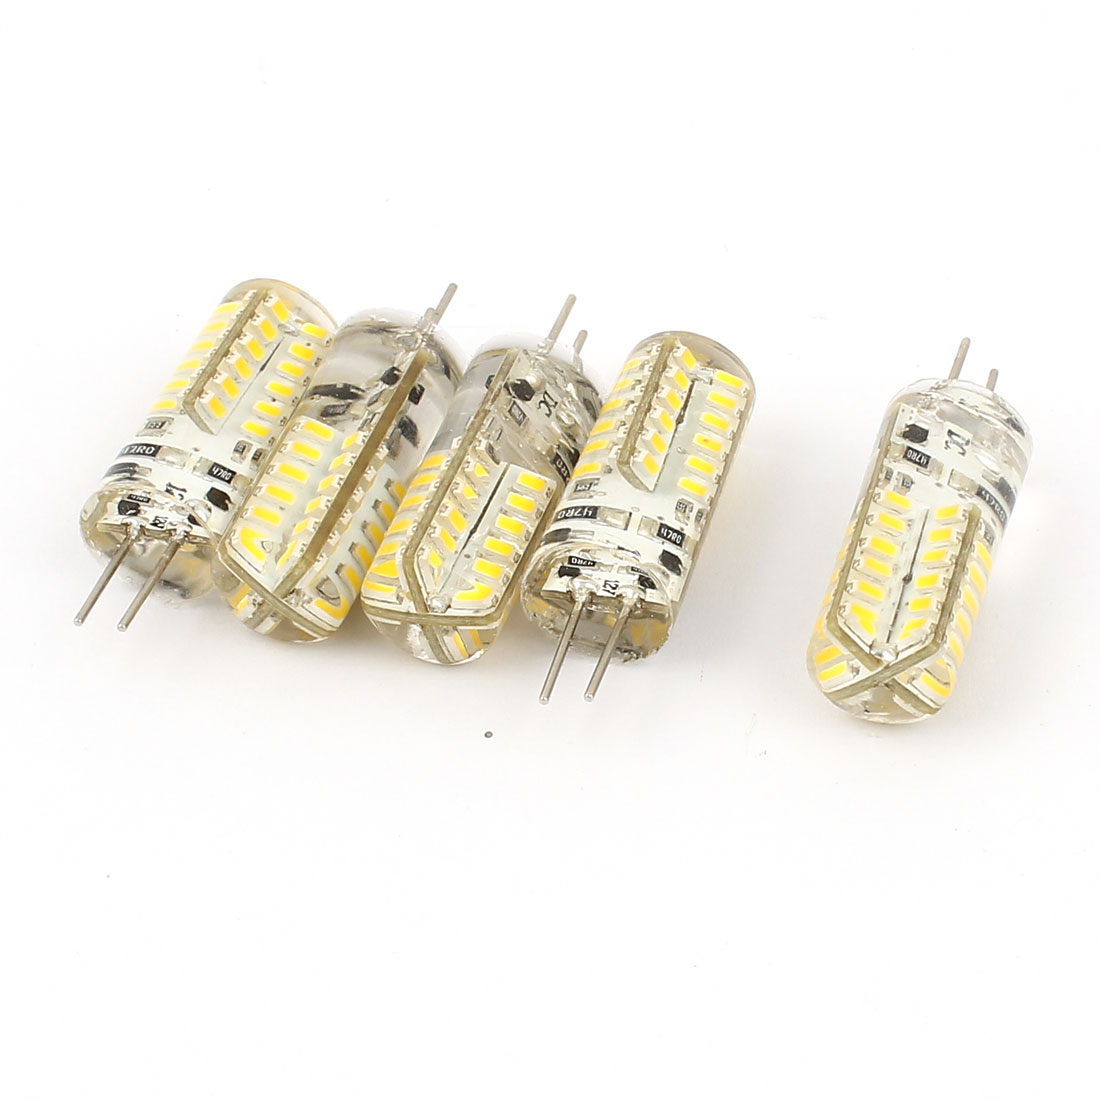 5 Pcs Energy Saving 150-170LM G4 3014 SMD 2.5W 48 LED Bulb Lamp Light Warm White